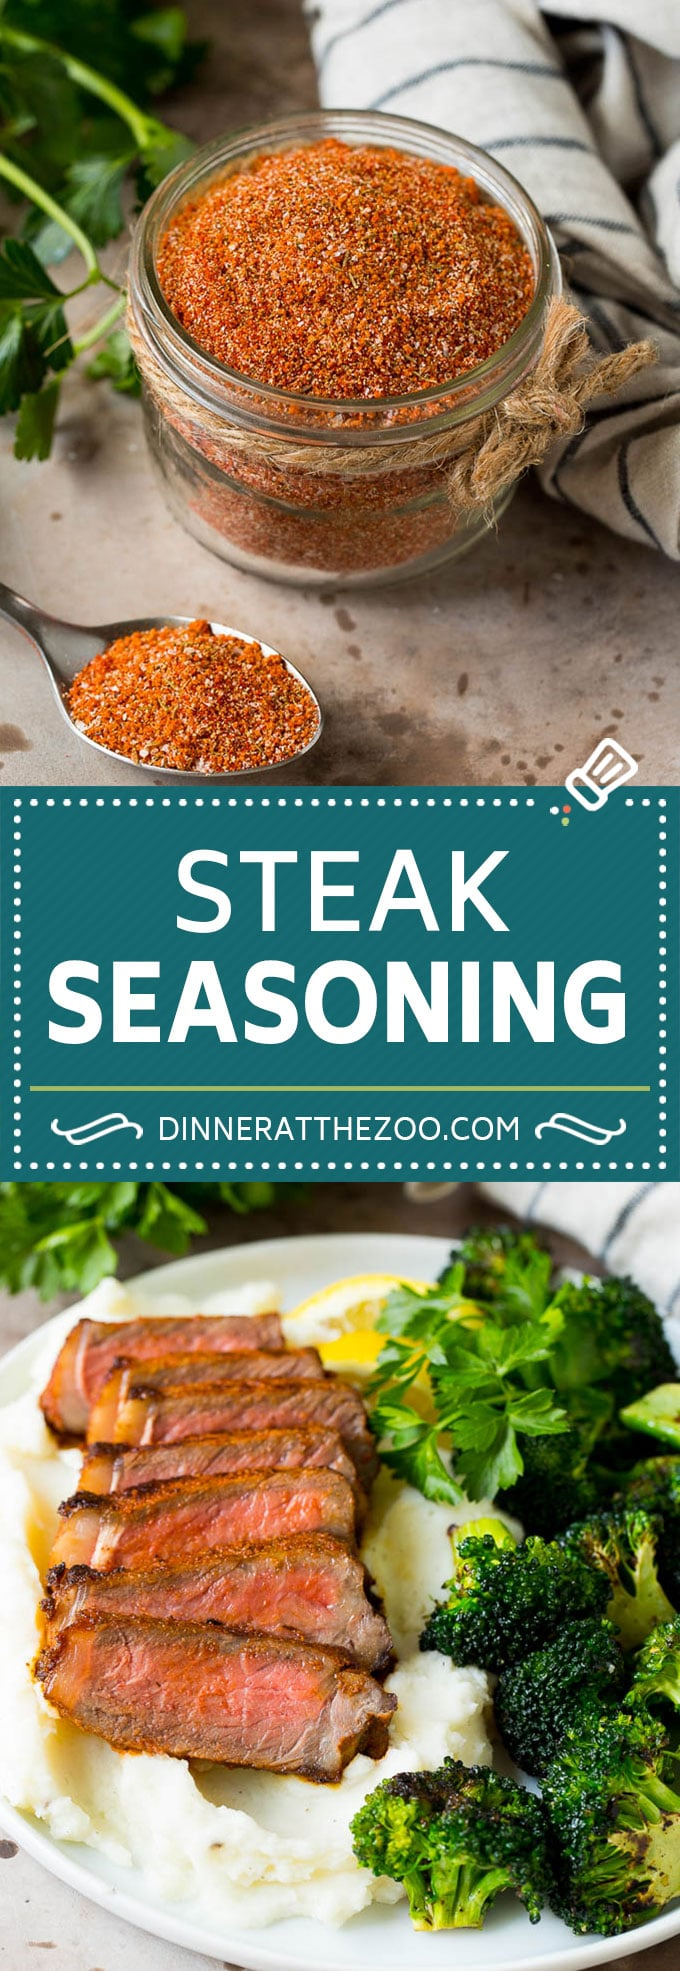 This steak seasoning takes just minutes to make and adds so much flavor to beef, chicken and pork.